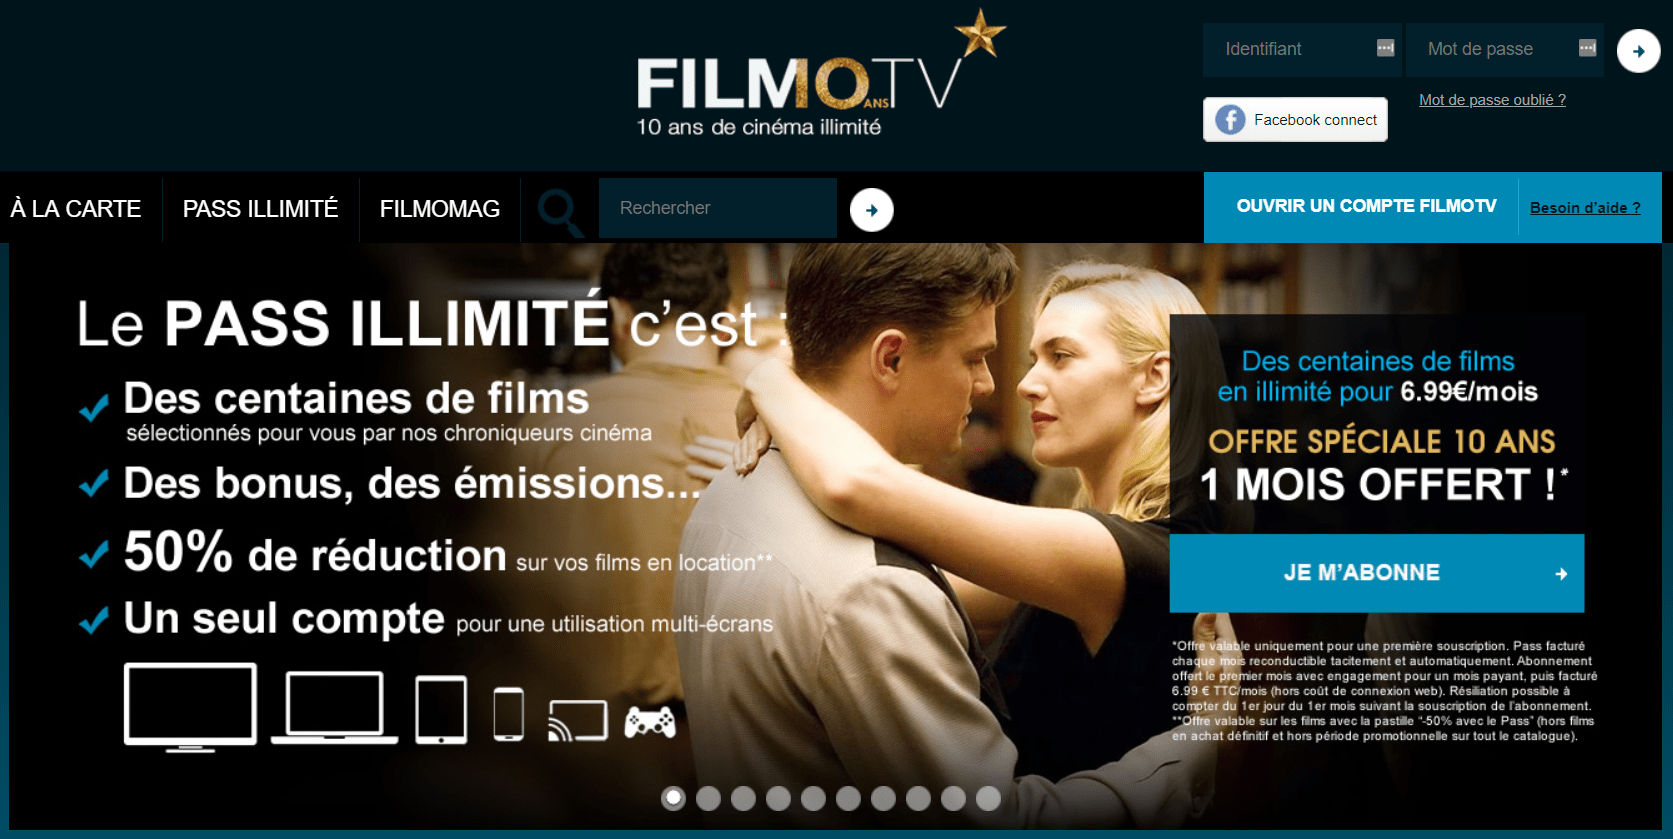 FilmoTV NetFlix Alternatives 2020 – Top 10 Sites de Streaming Légal comme Netflix